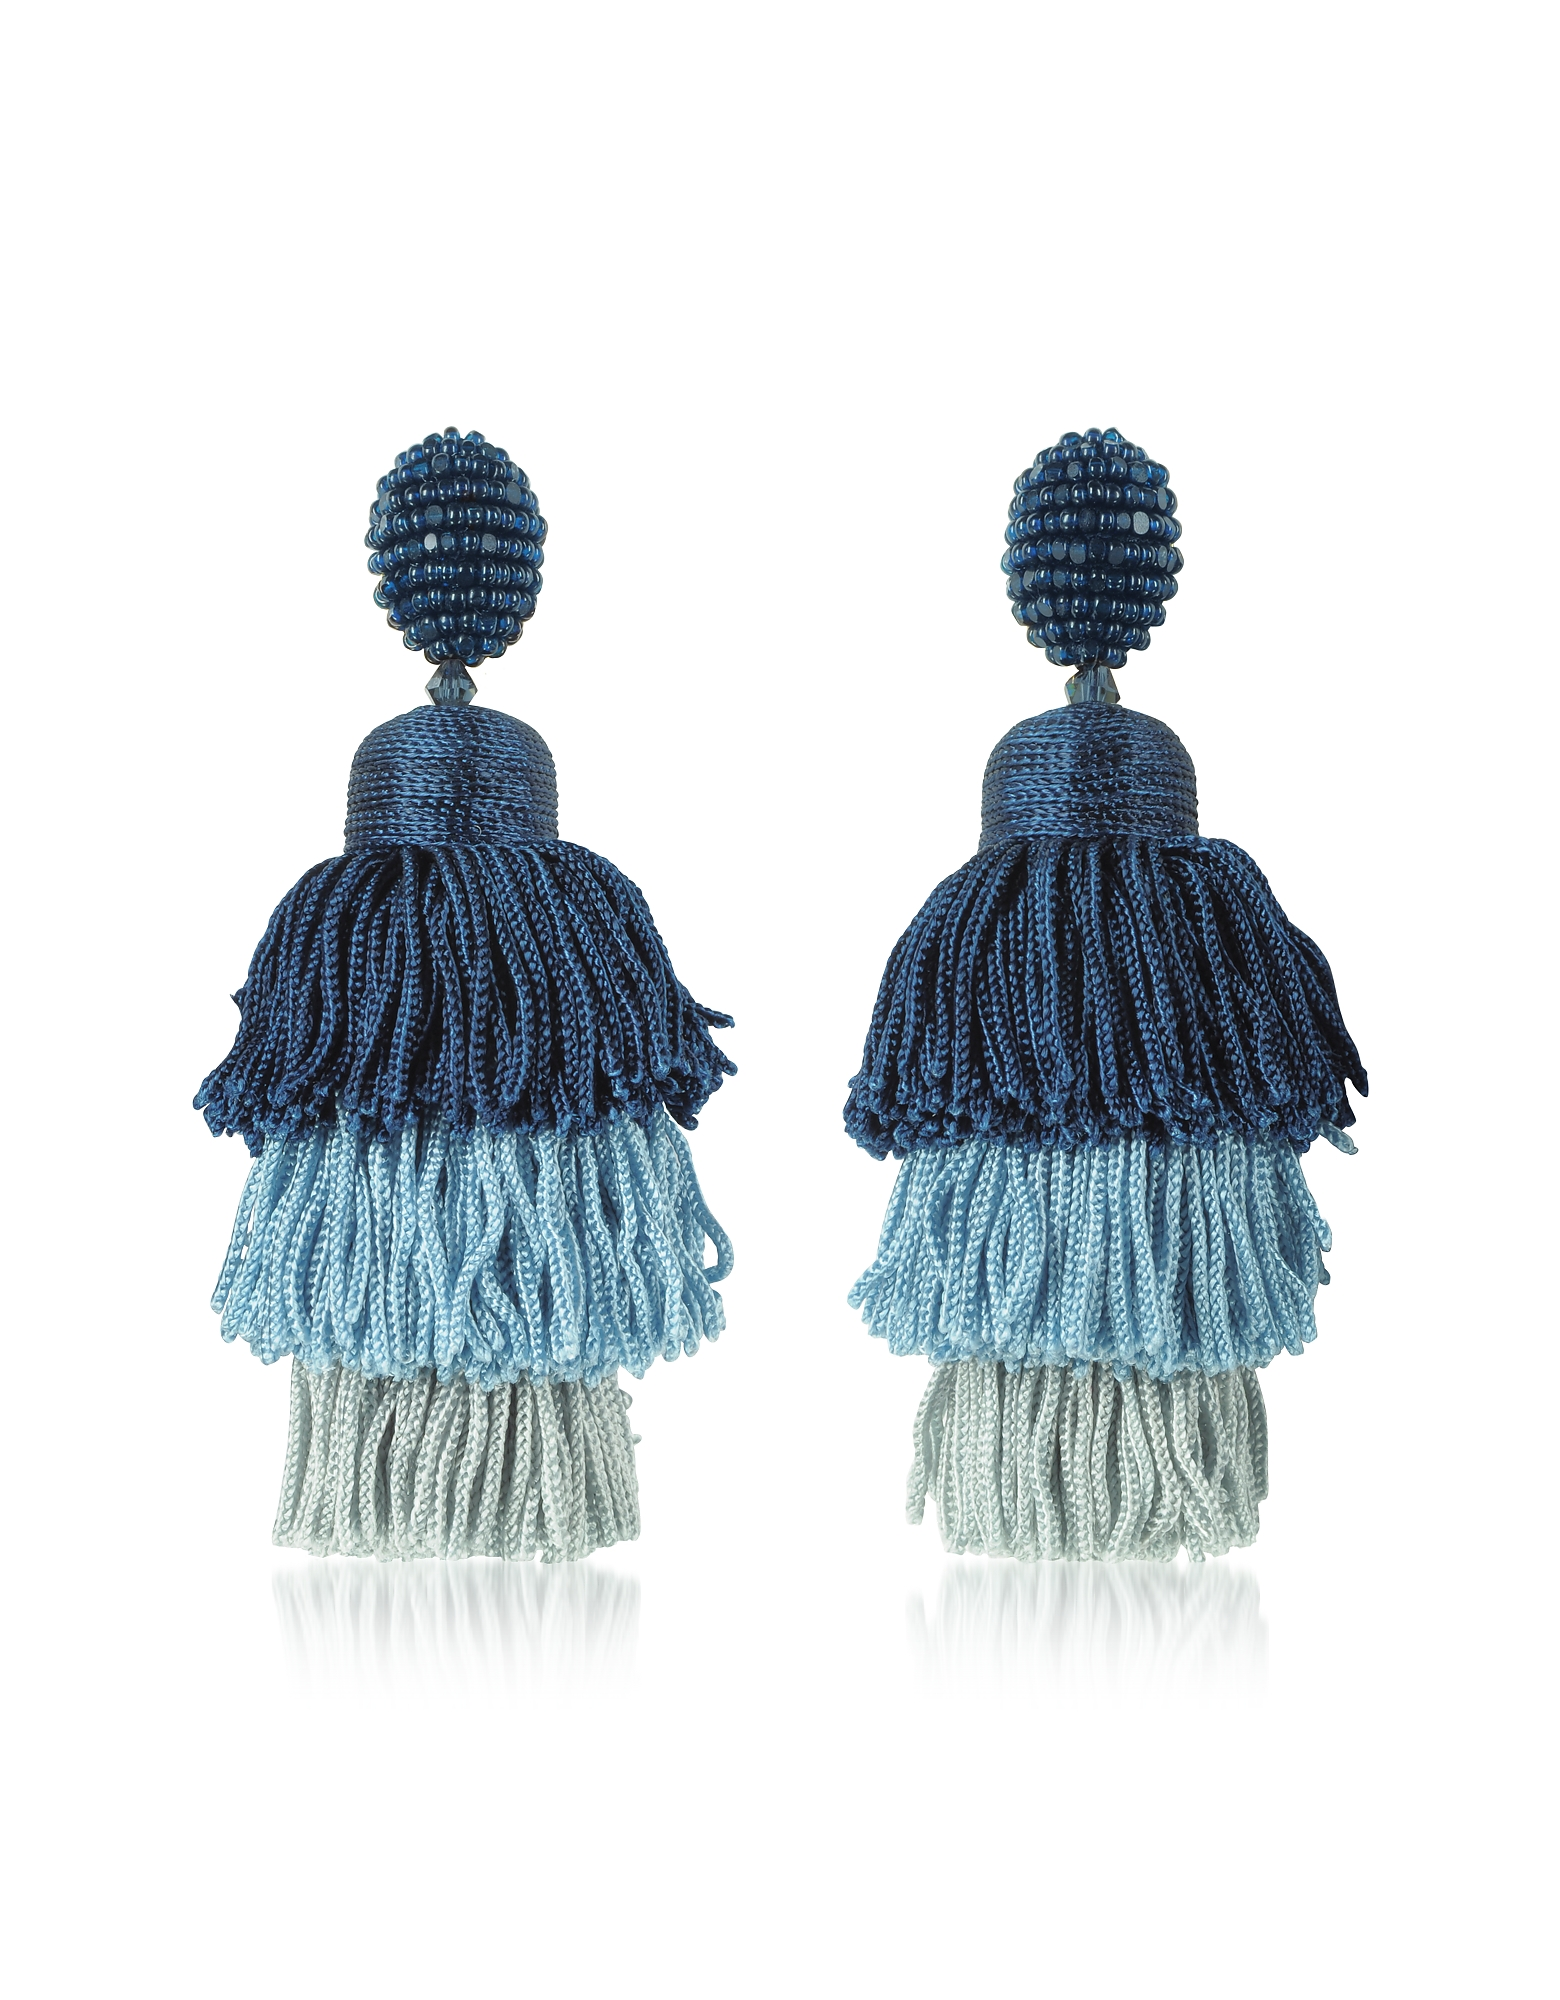 Oscar de la Renta Earrings, Long Silk Tiered Tassel Earrings